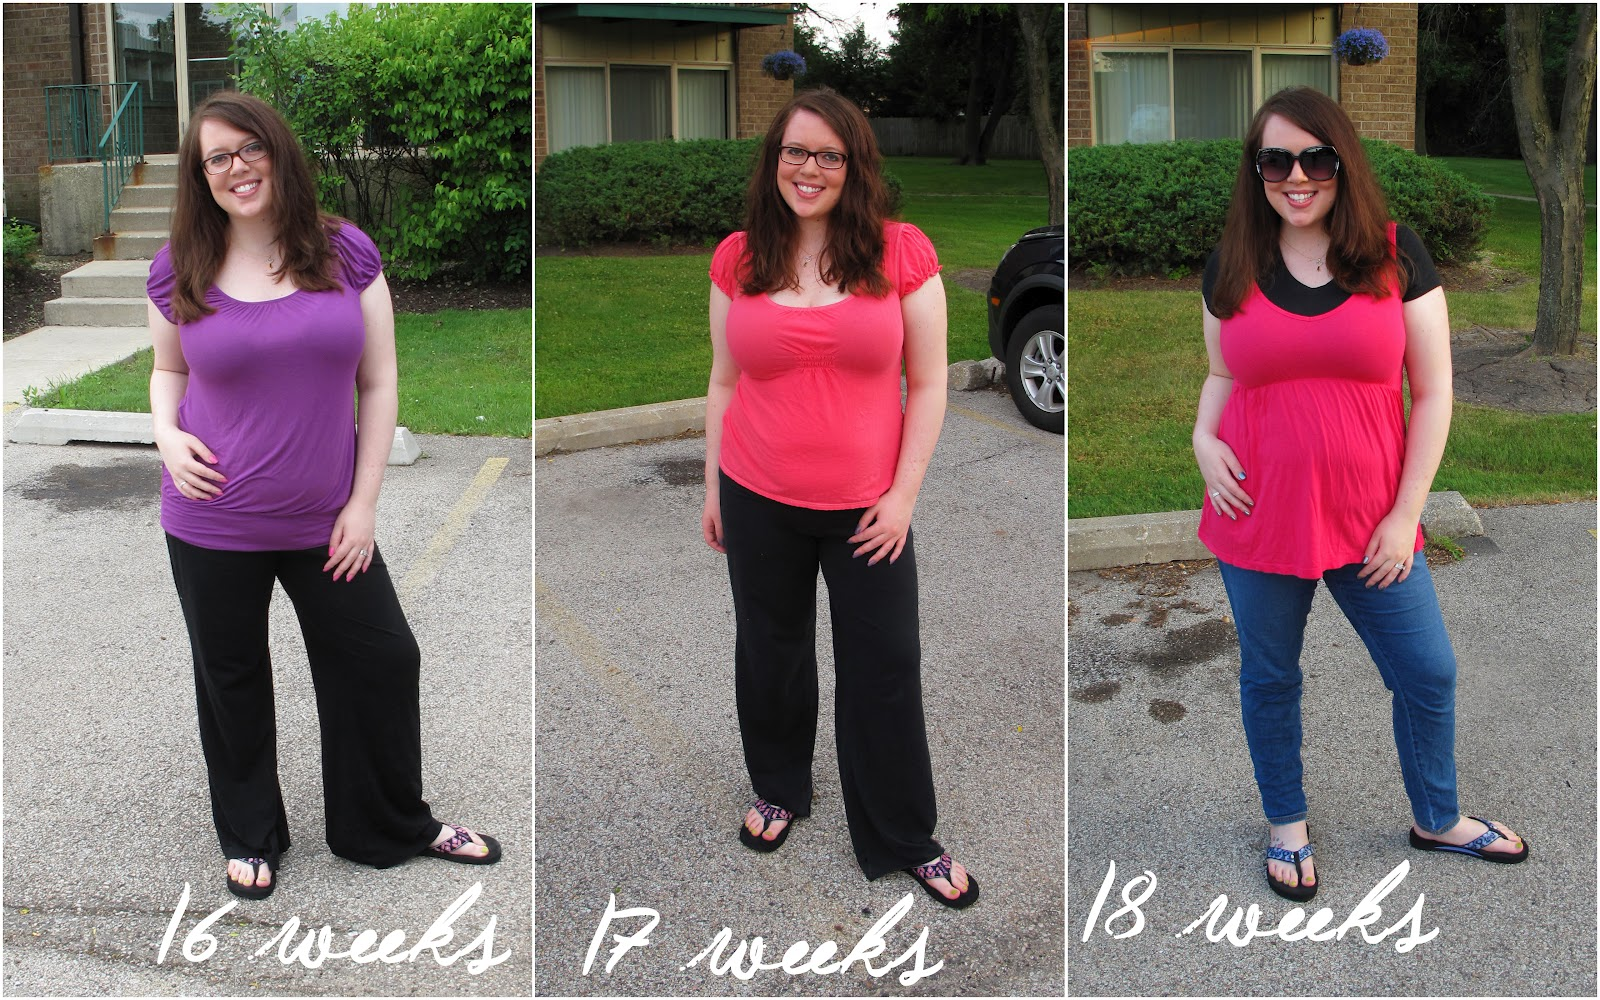 My Pregnancy - The Accidental Wallflower